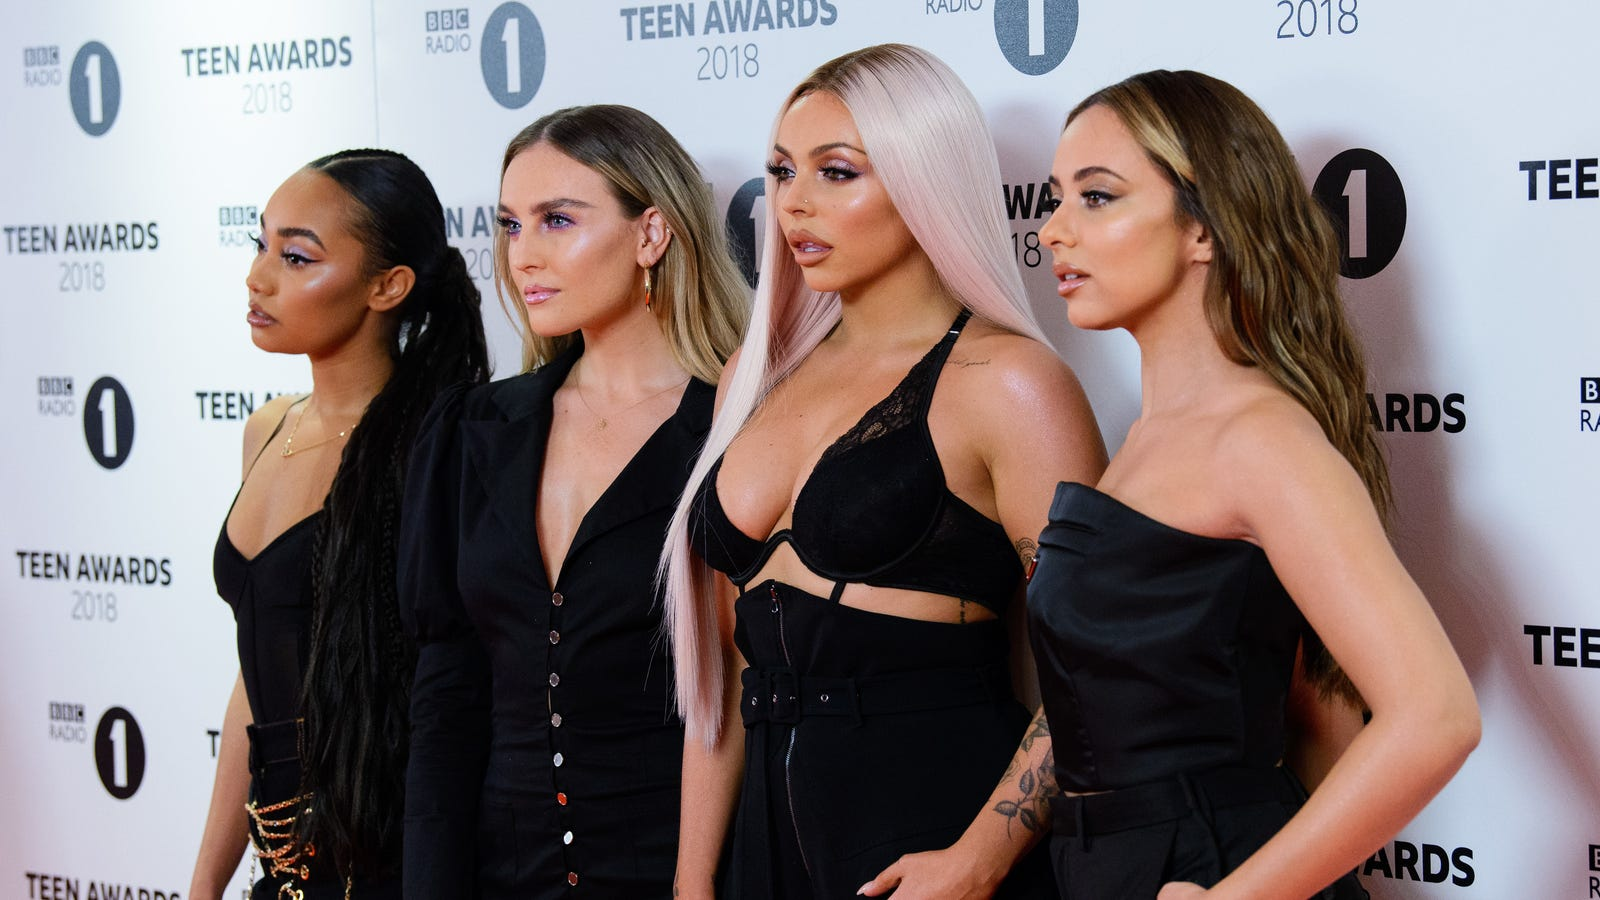 Little Mix Is Somehow in the Mix of the Nicki Minaj and Cardi B Beef